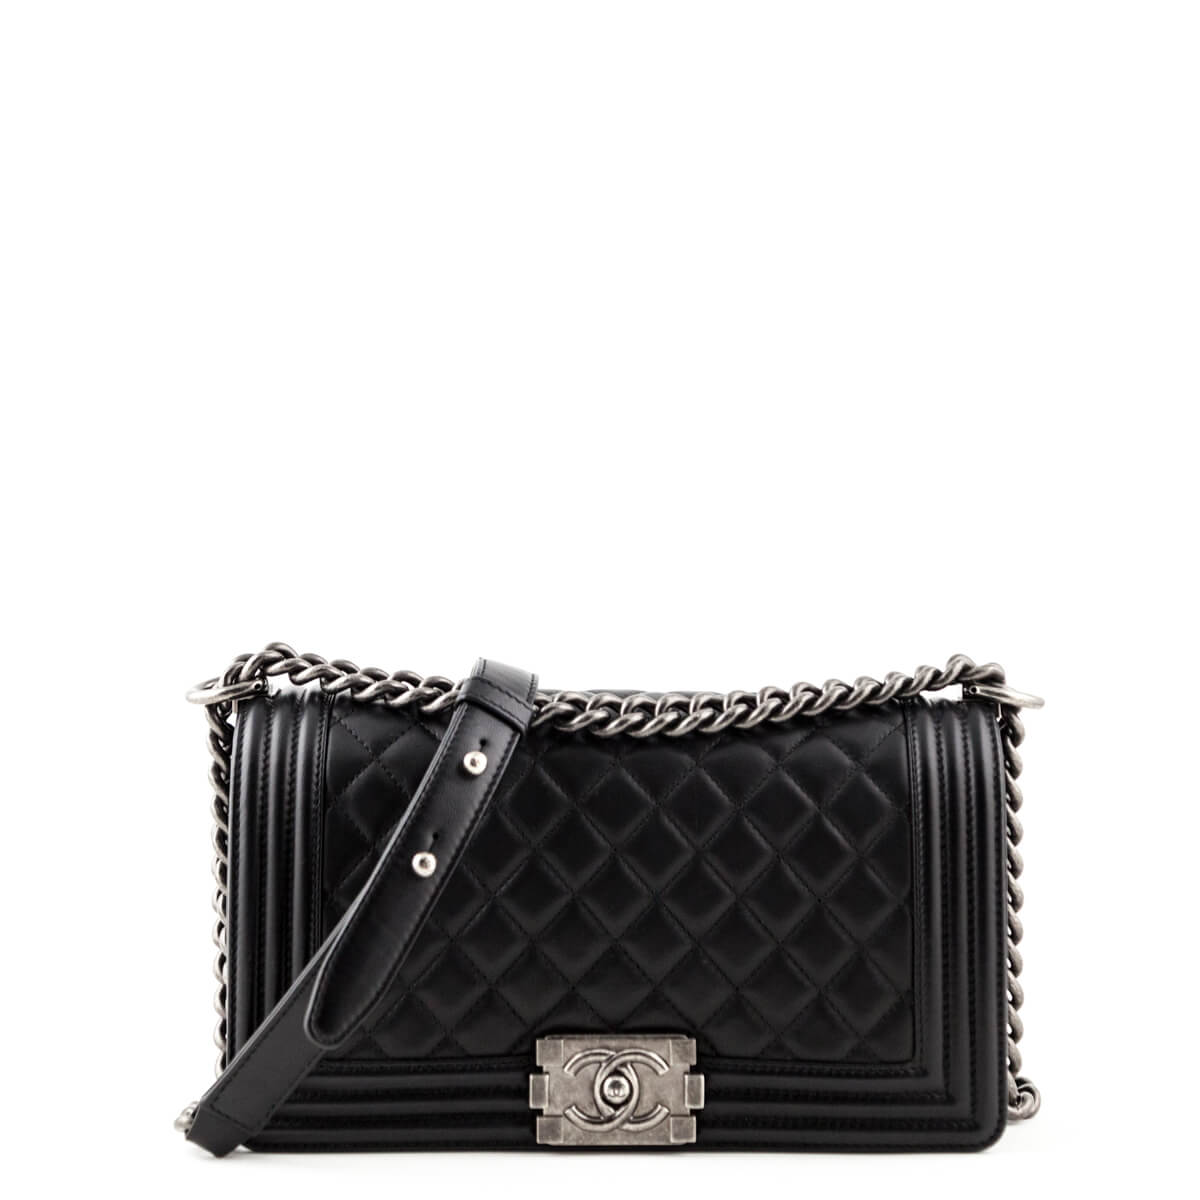 048742cba98c1c Chanel Black Calfskin Old Medium Boy Bag - LOVE that BAG - Preowned  Authentic Designer Handbags ...